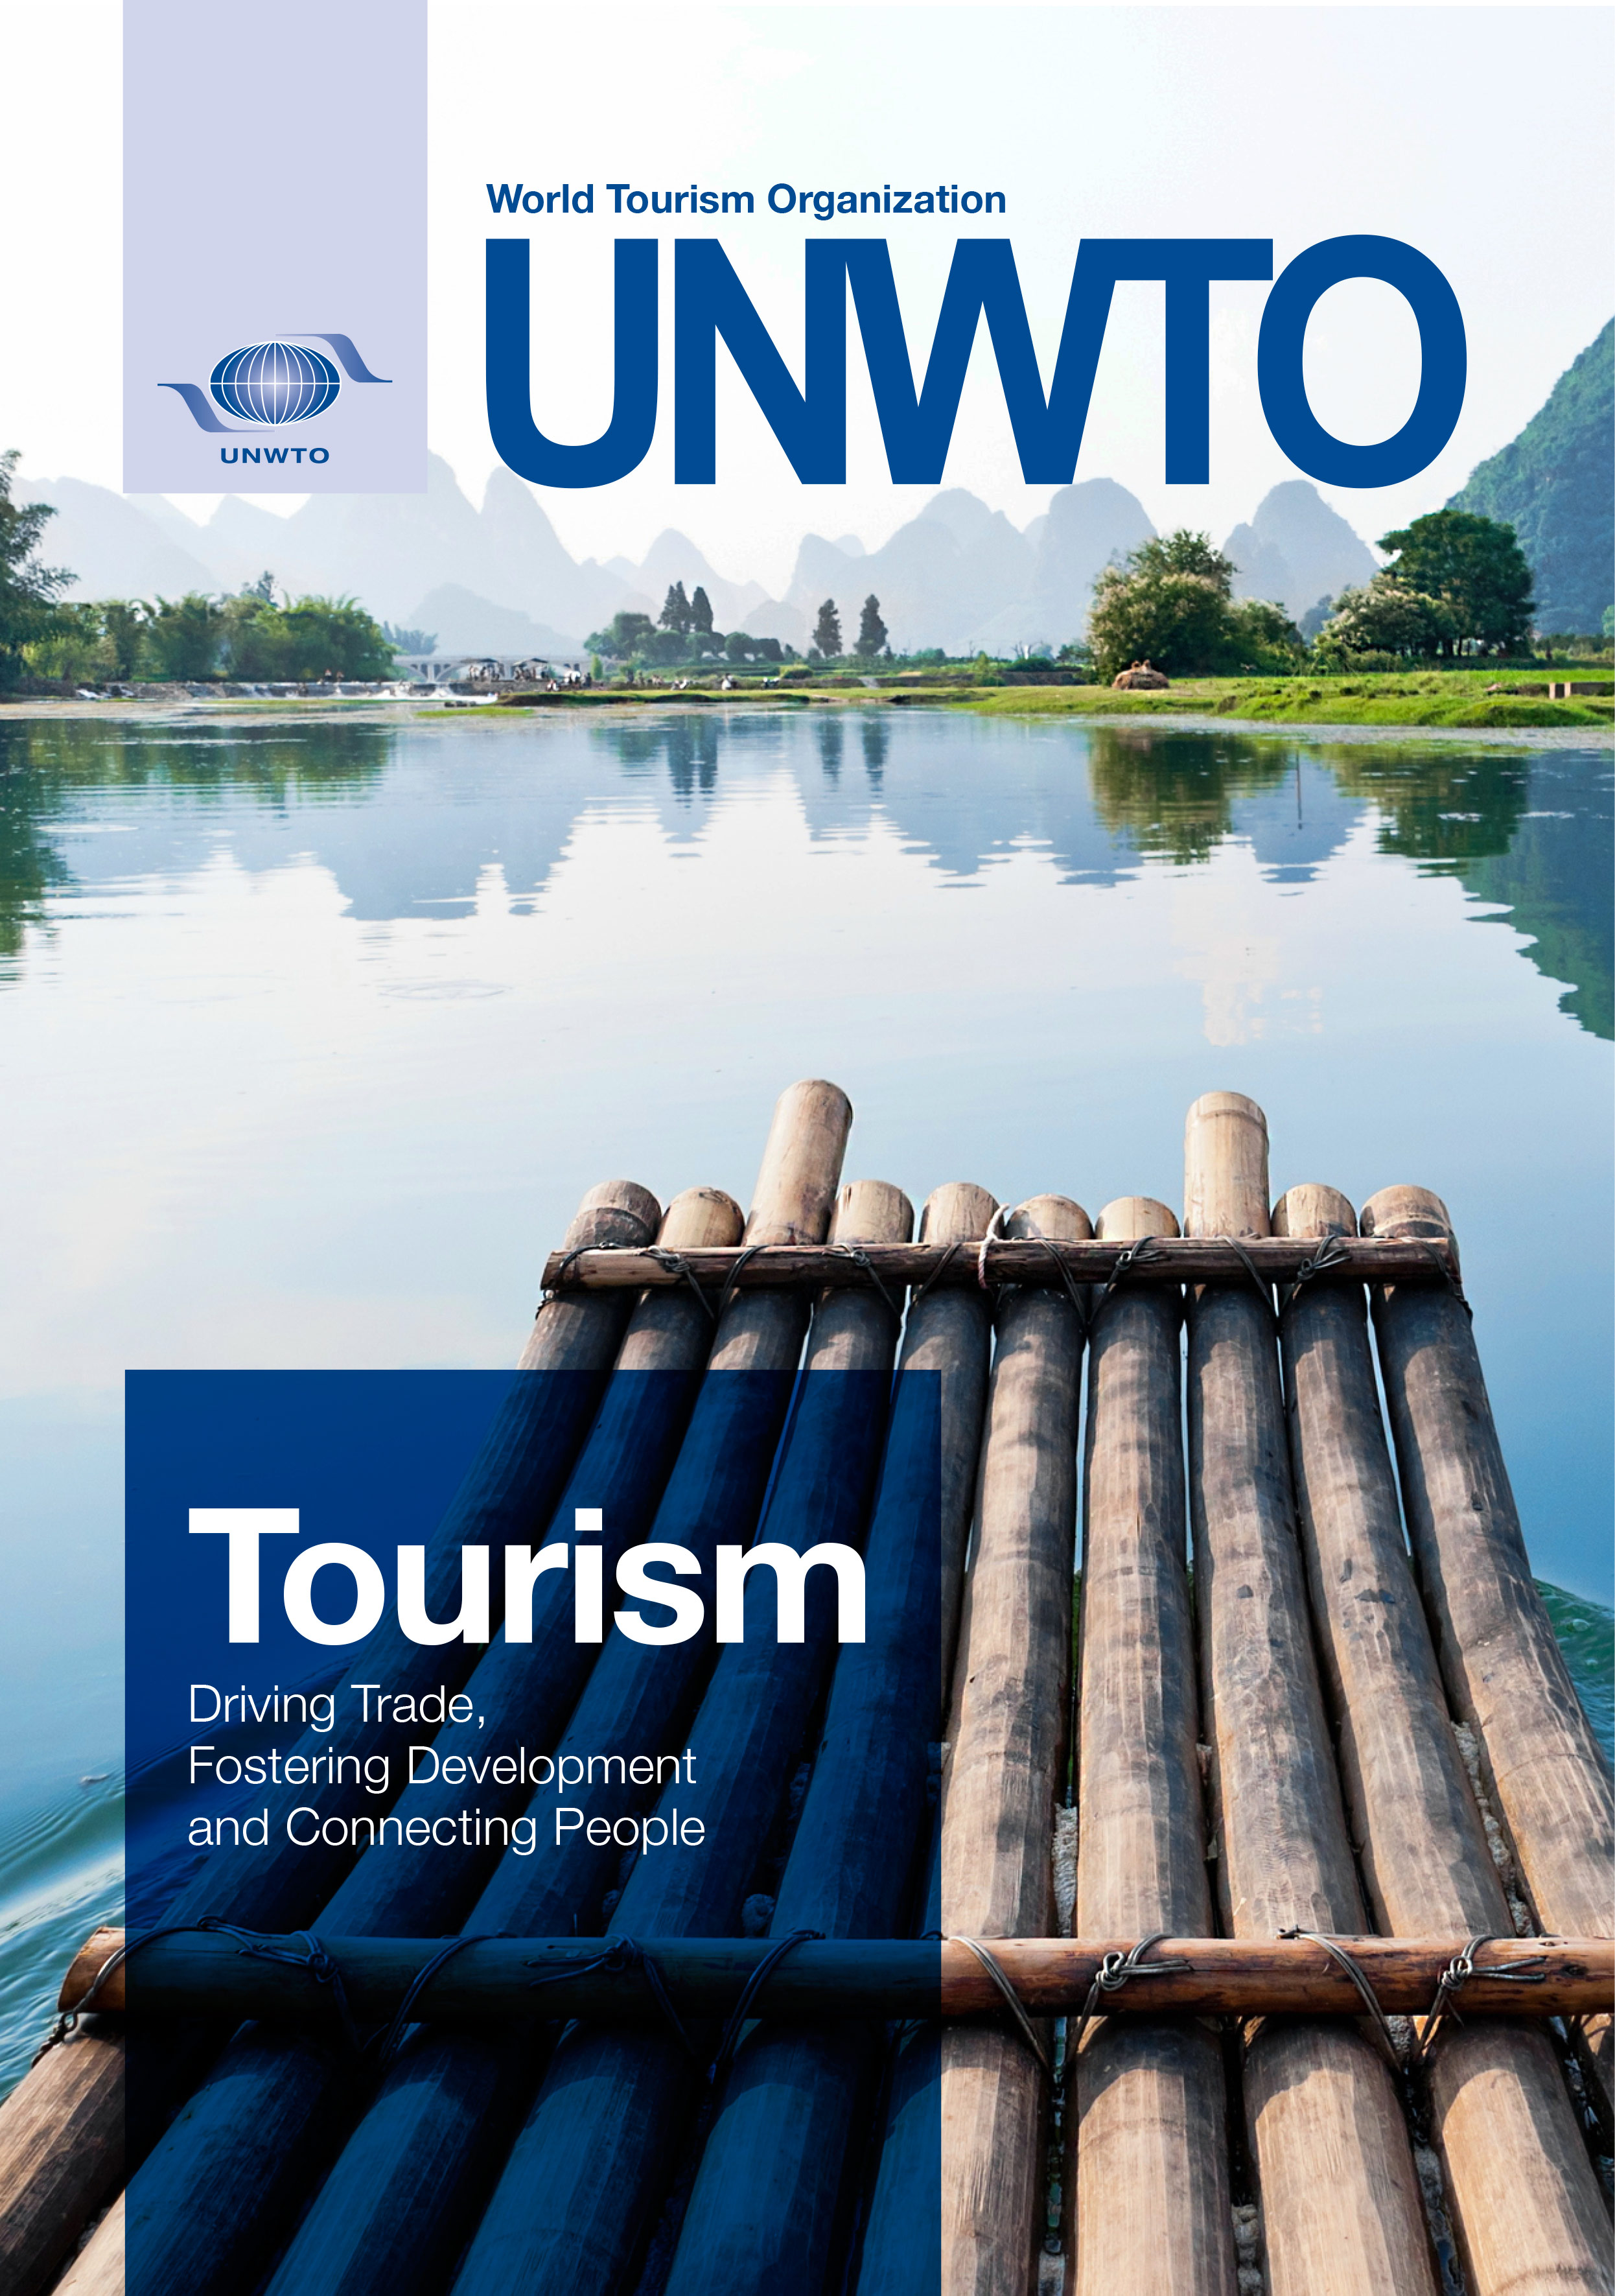 Tourism Driving Trade, Fostering Development and Connecting People